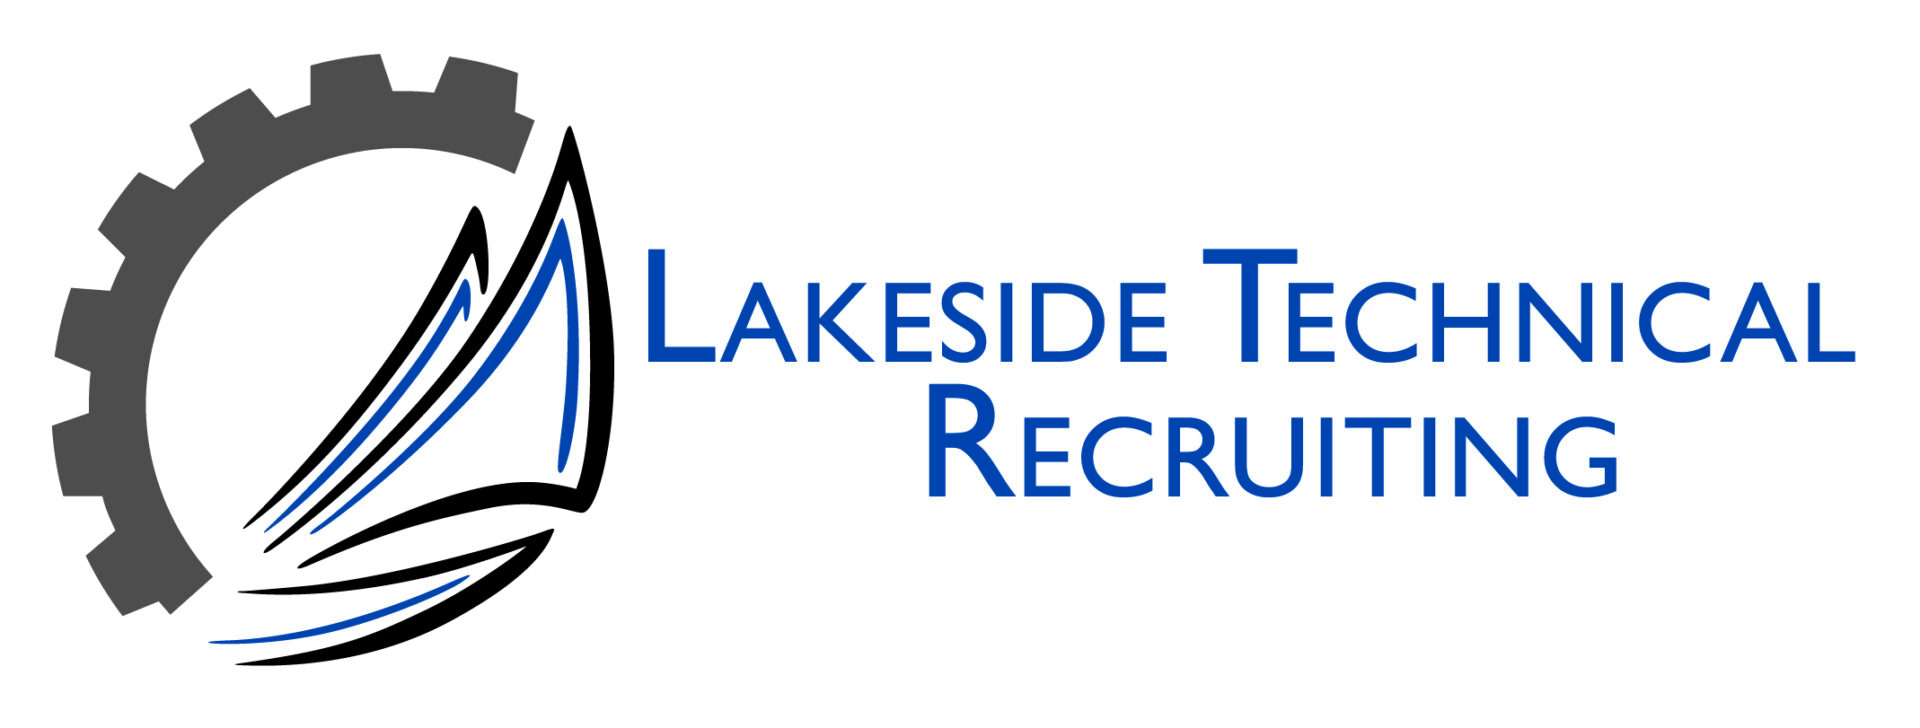 Lakeside_Technical_Recruiting_FN-01